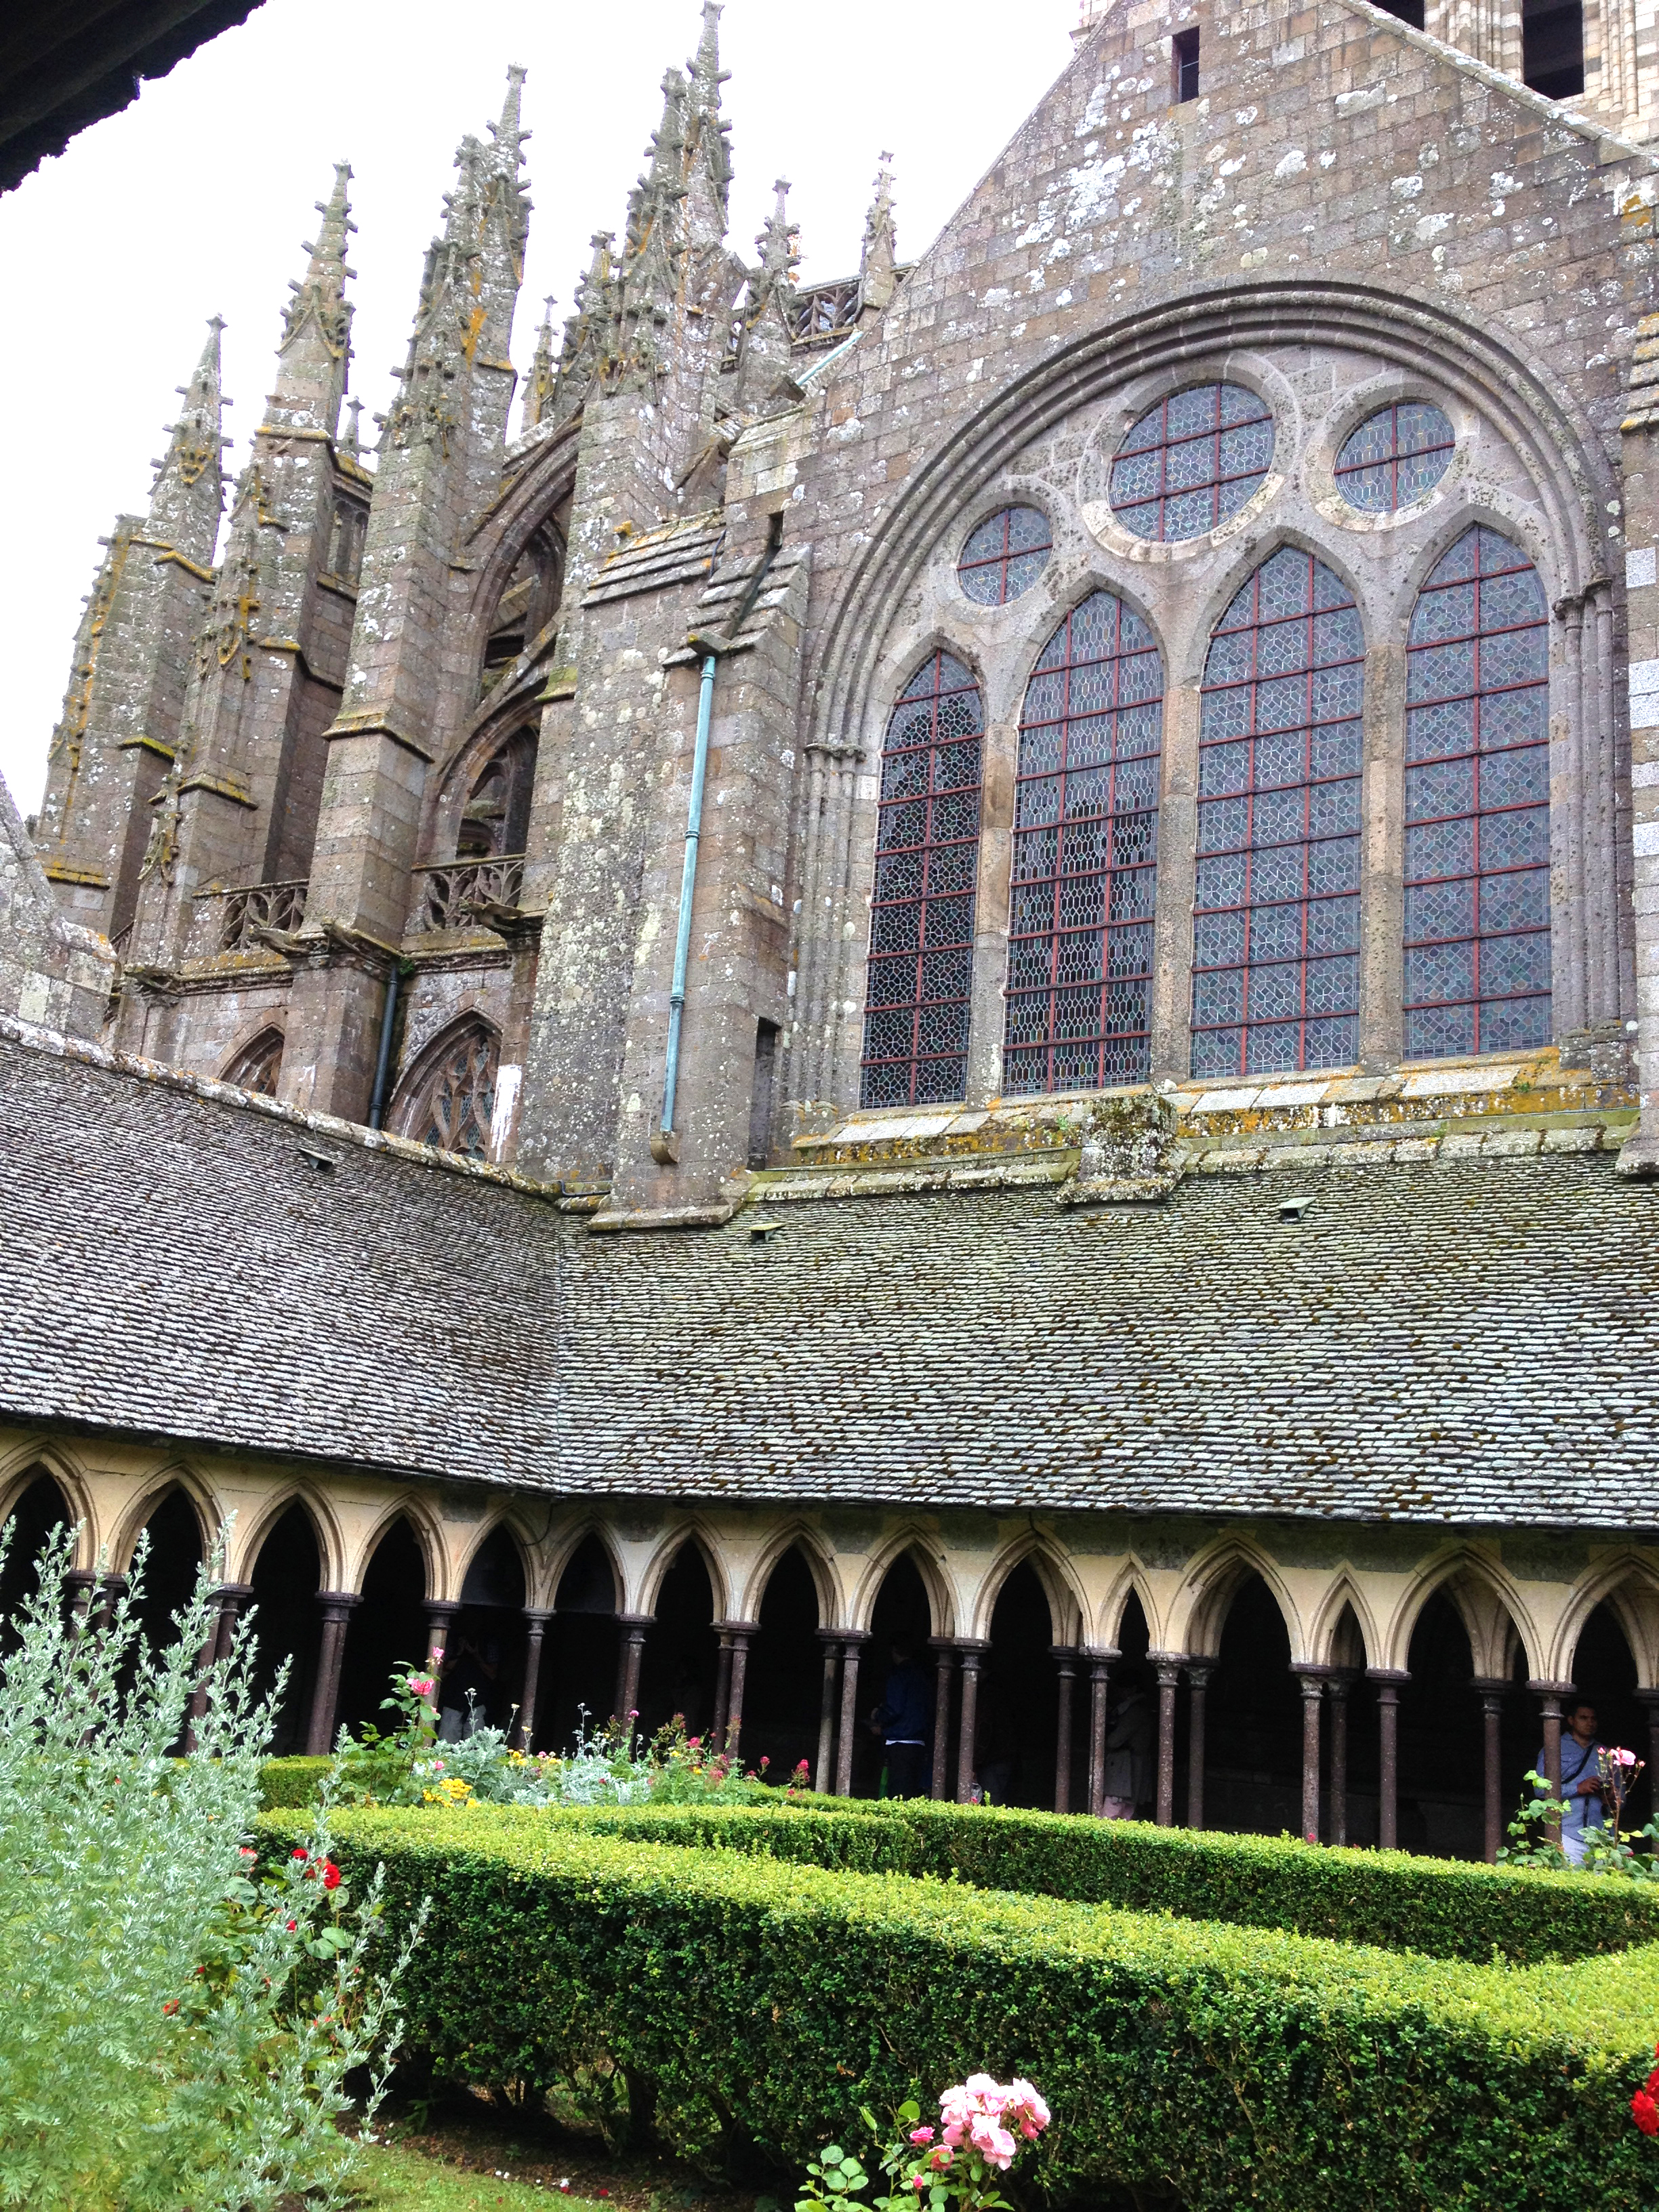 The abbey has a secret roof-top garden framed by gorgeous, crumbling pointed arches.